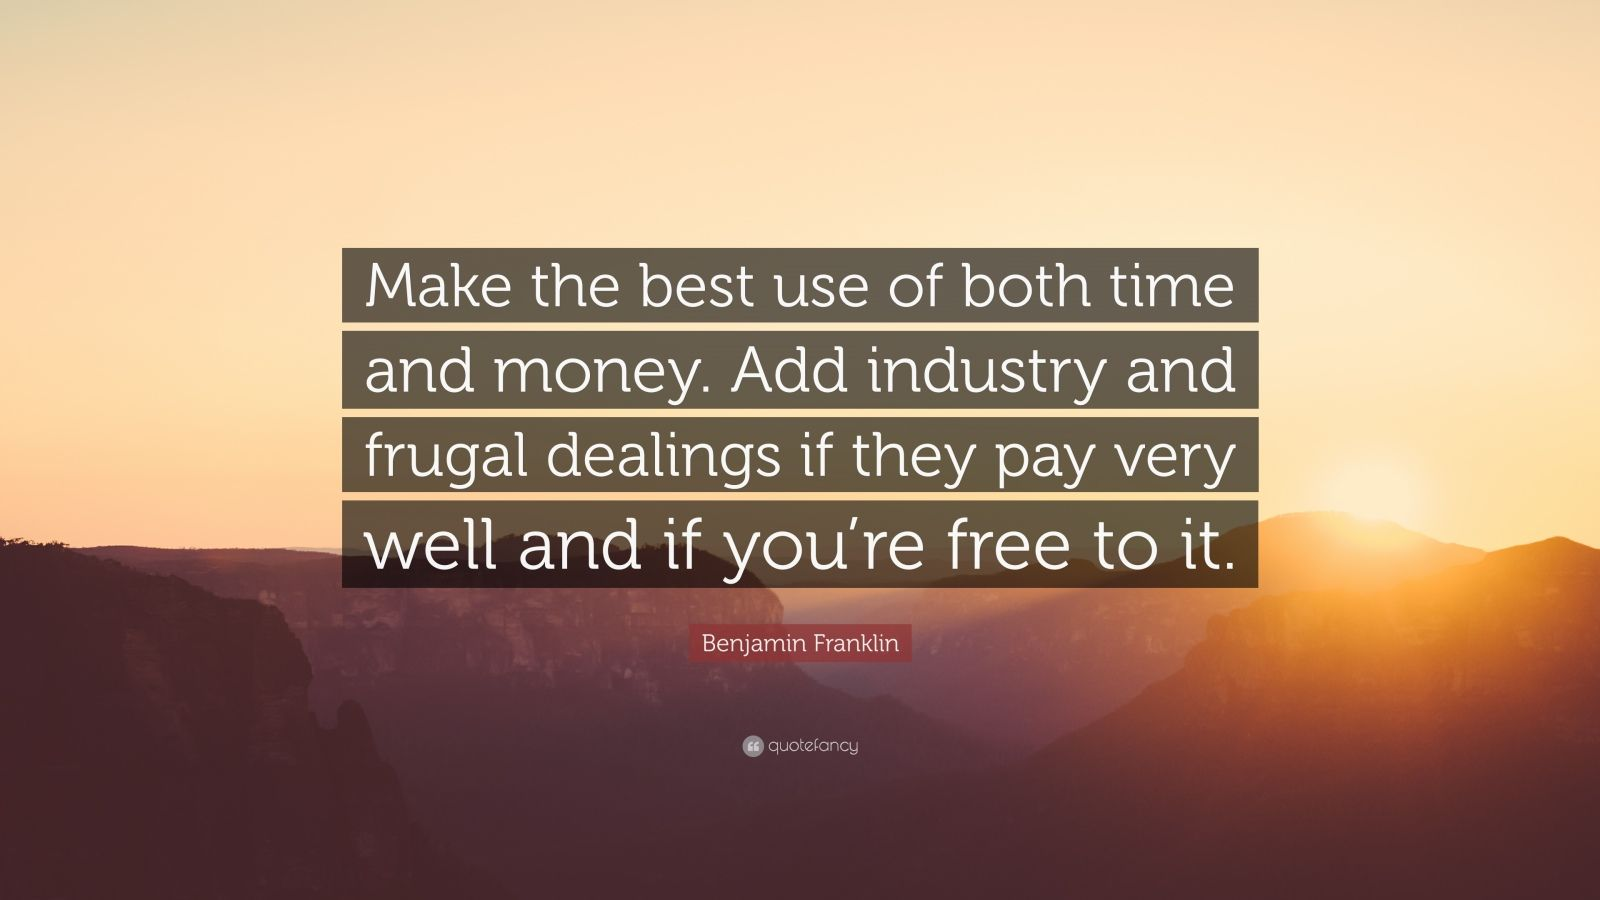 """Benjamin Franklin Quote: """"Make the best use of both time and money. Add industry and frugal dealings if they pay very well and if you're free to it."""""""